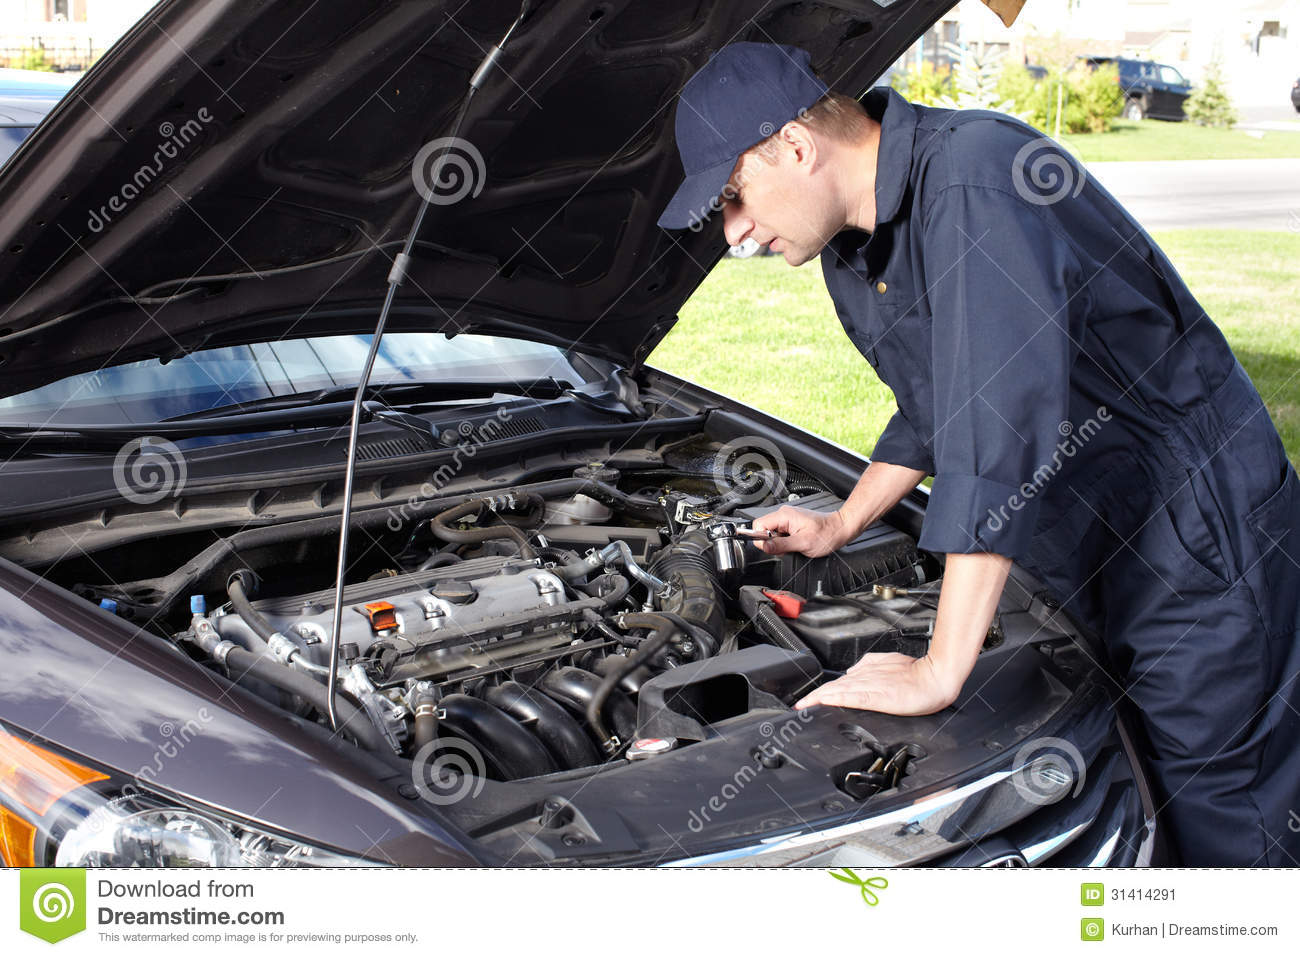 Auto Mechanic best computers for business majors